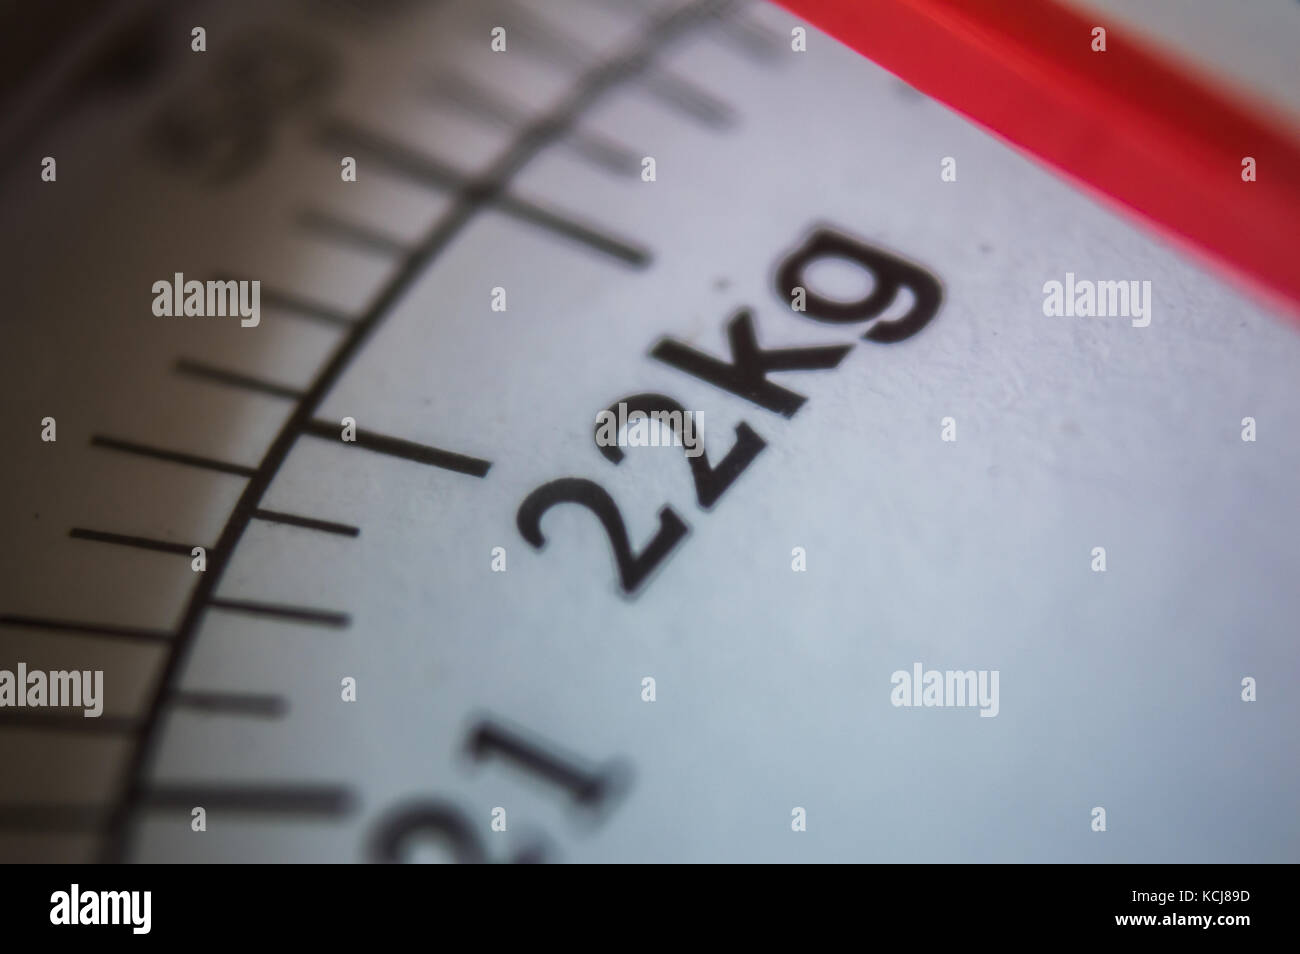 Close up of a scale with 22kg showing up. - Stock Image